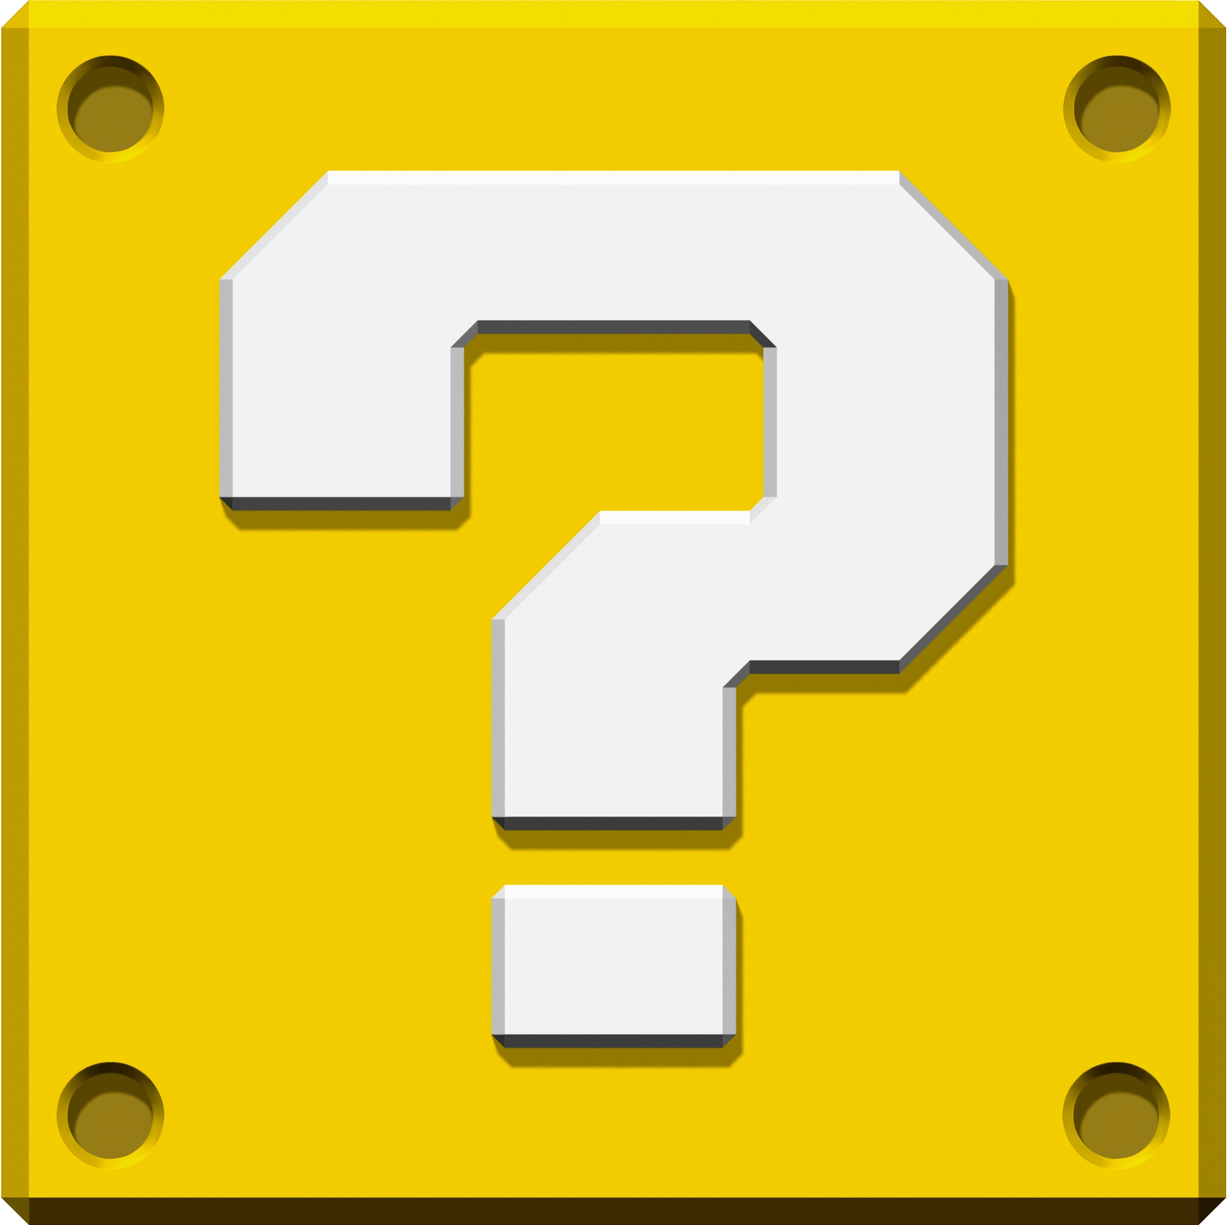 image question block art new super mario bros png mariowiki